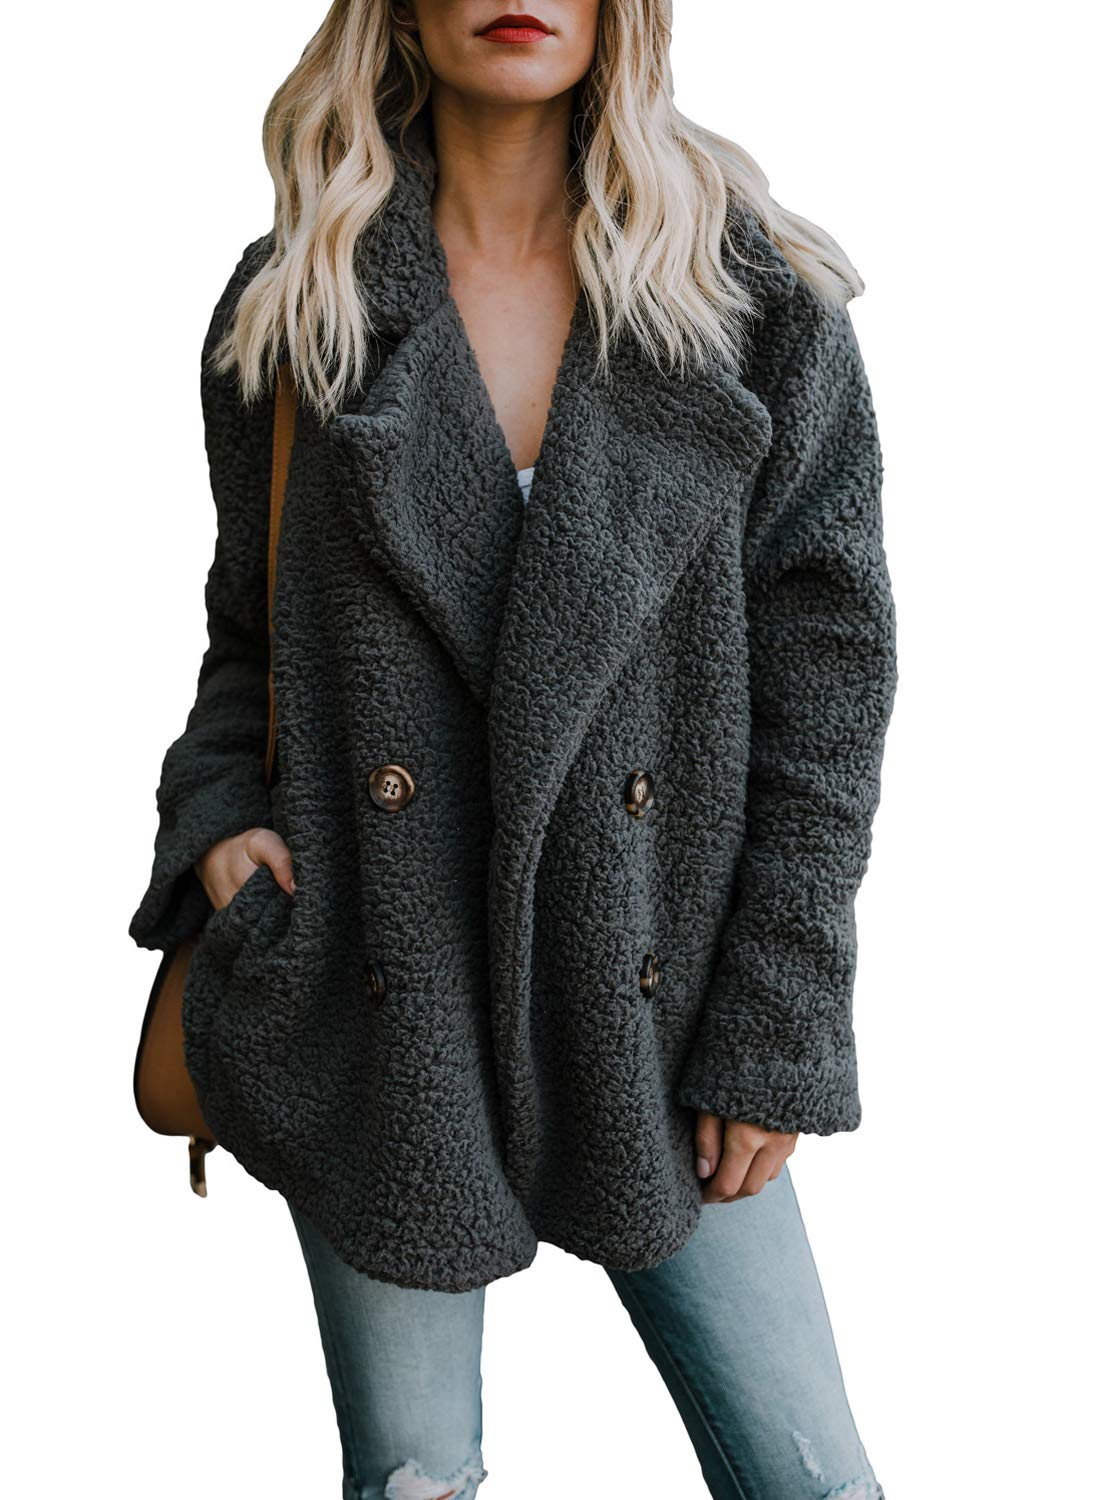 Dokotoo Womens Ladies Winter Cozy Warm Casual Oversized Fleece Open Front Fuzzy Coat with Pockets Fluffy Outerwear Jacket Black Medium